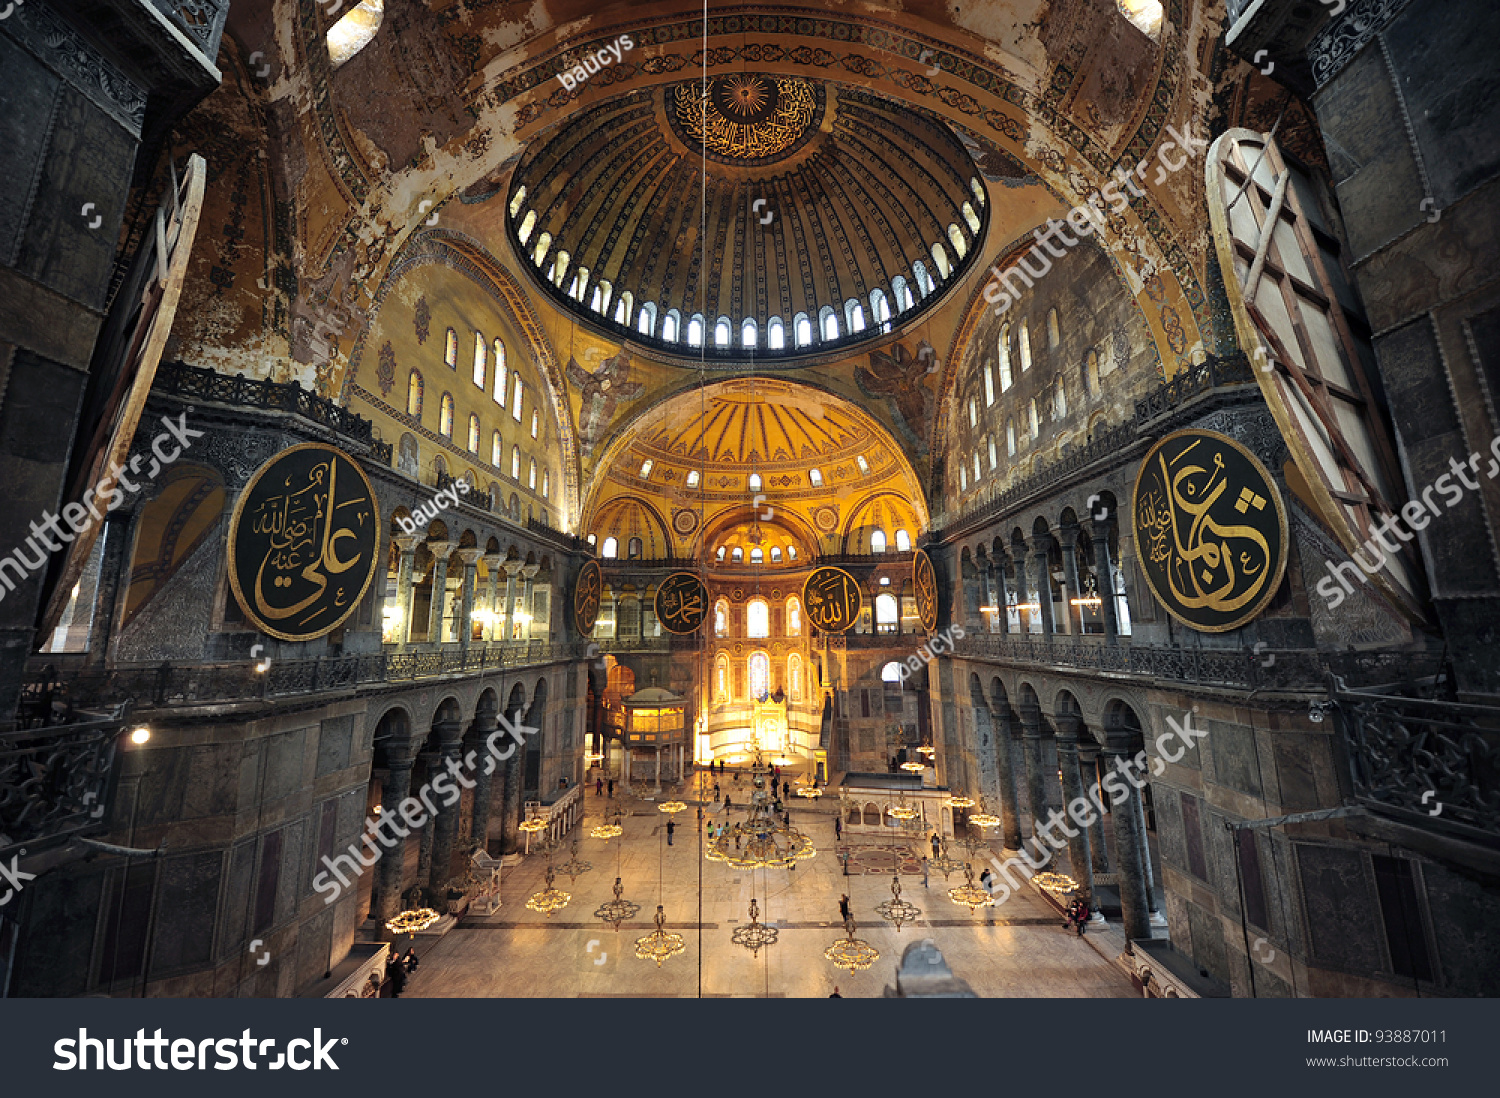 The Interior Of Hagia Sophia, Ayasofya, Istanbul, Turkey.